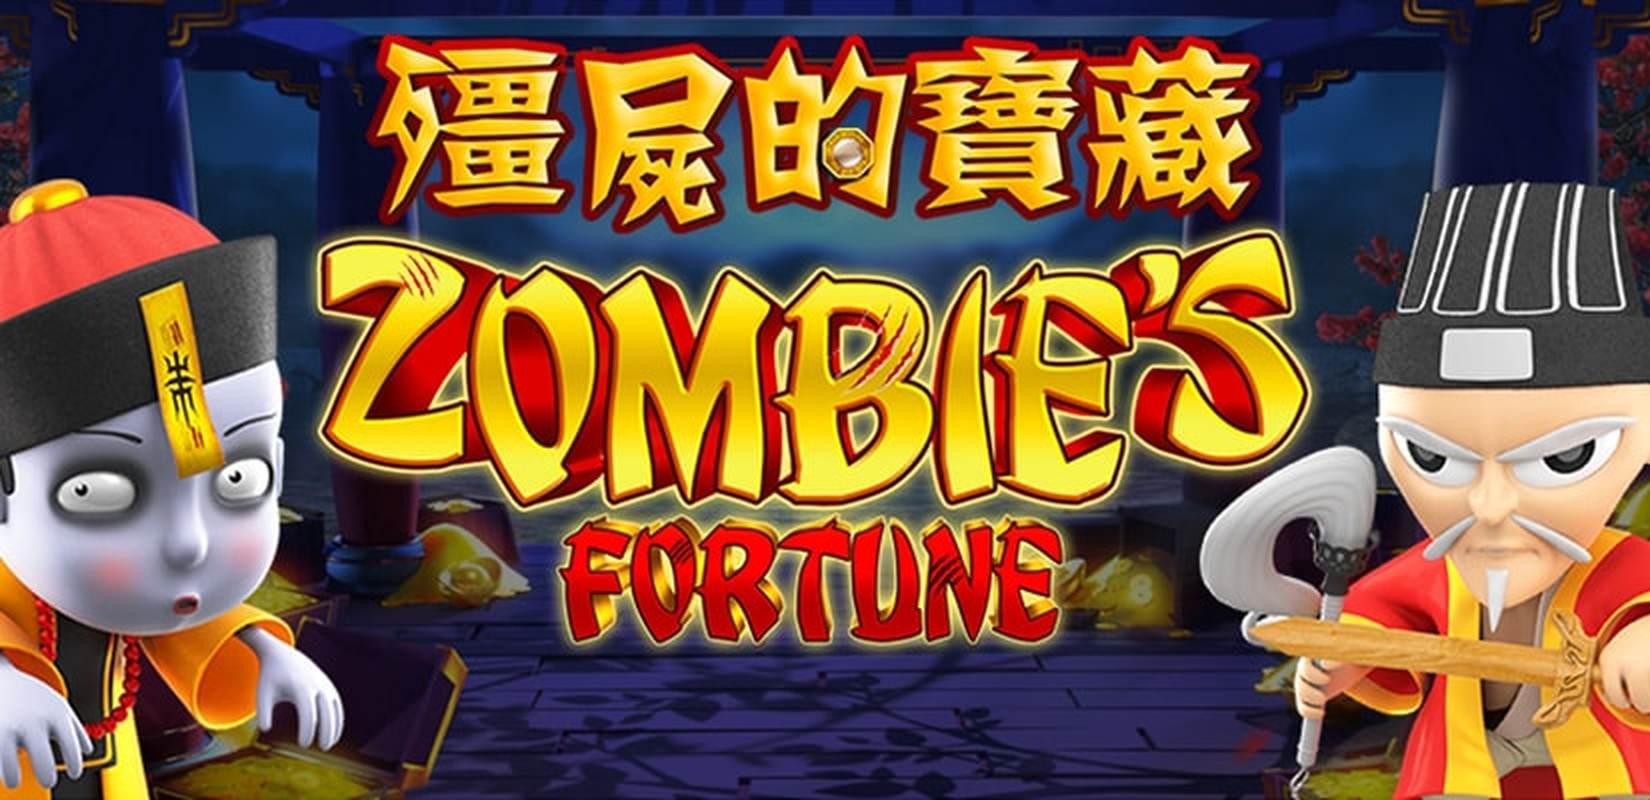 Se Zombie's Fortune Online Slot Demo Game, Aspect Gaming